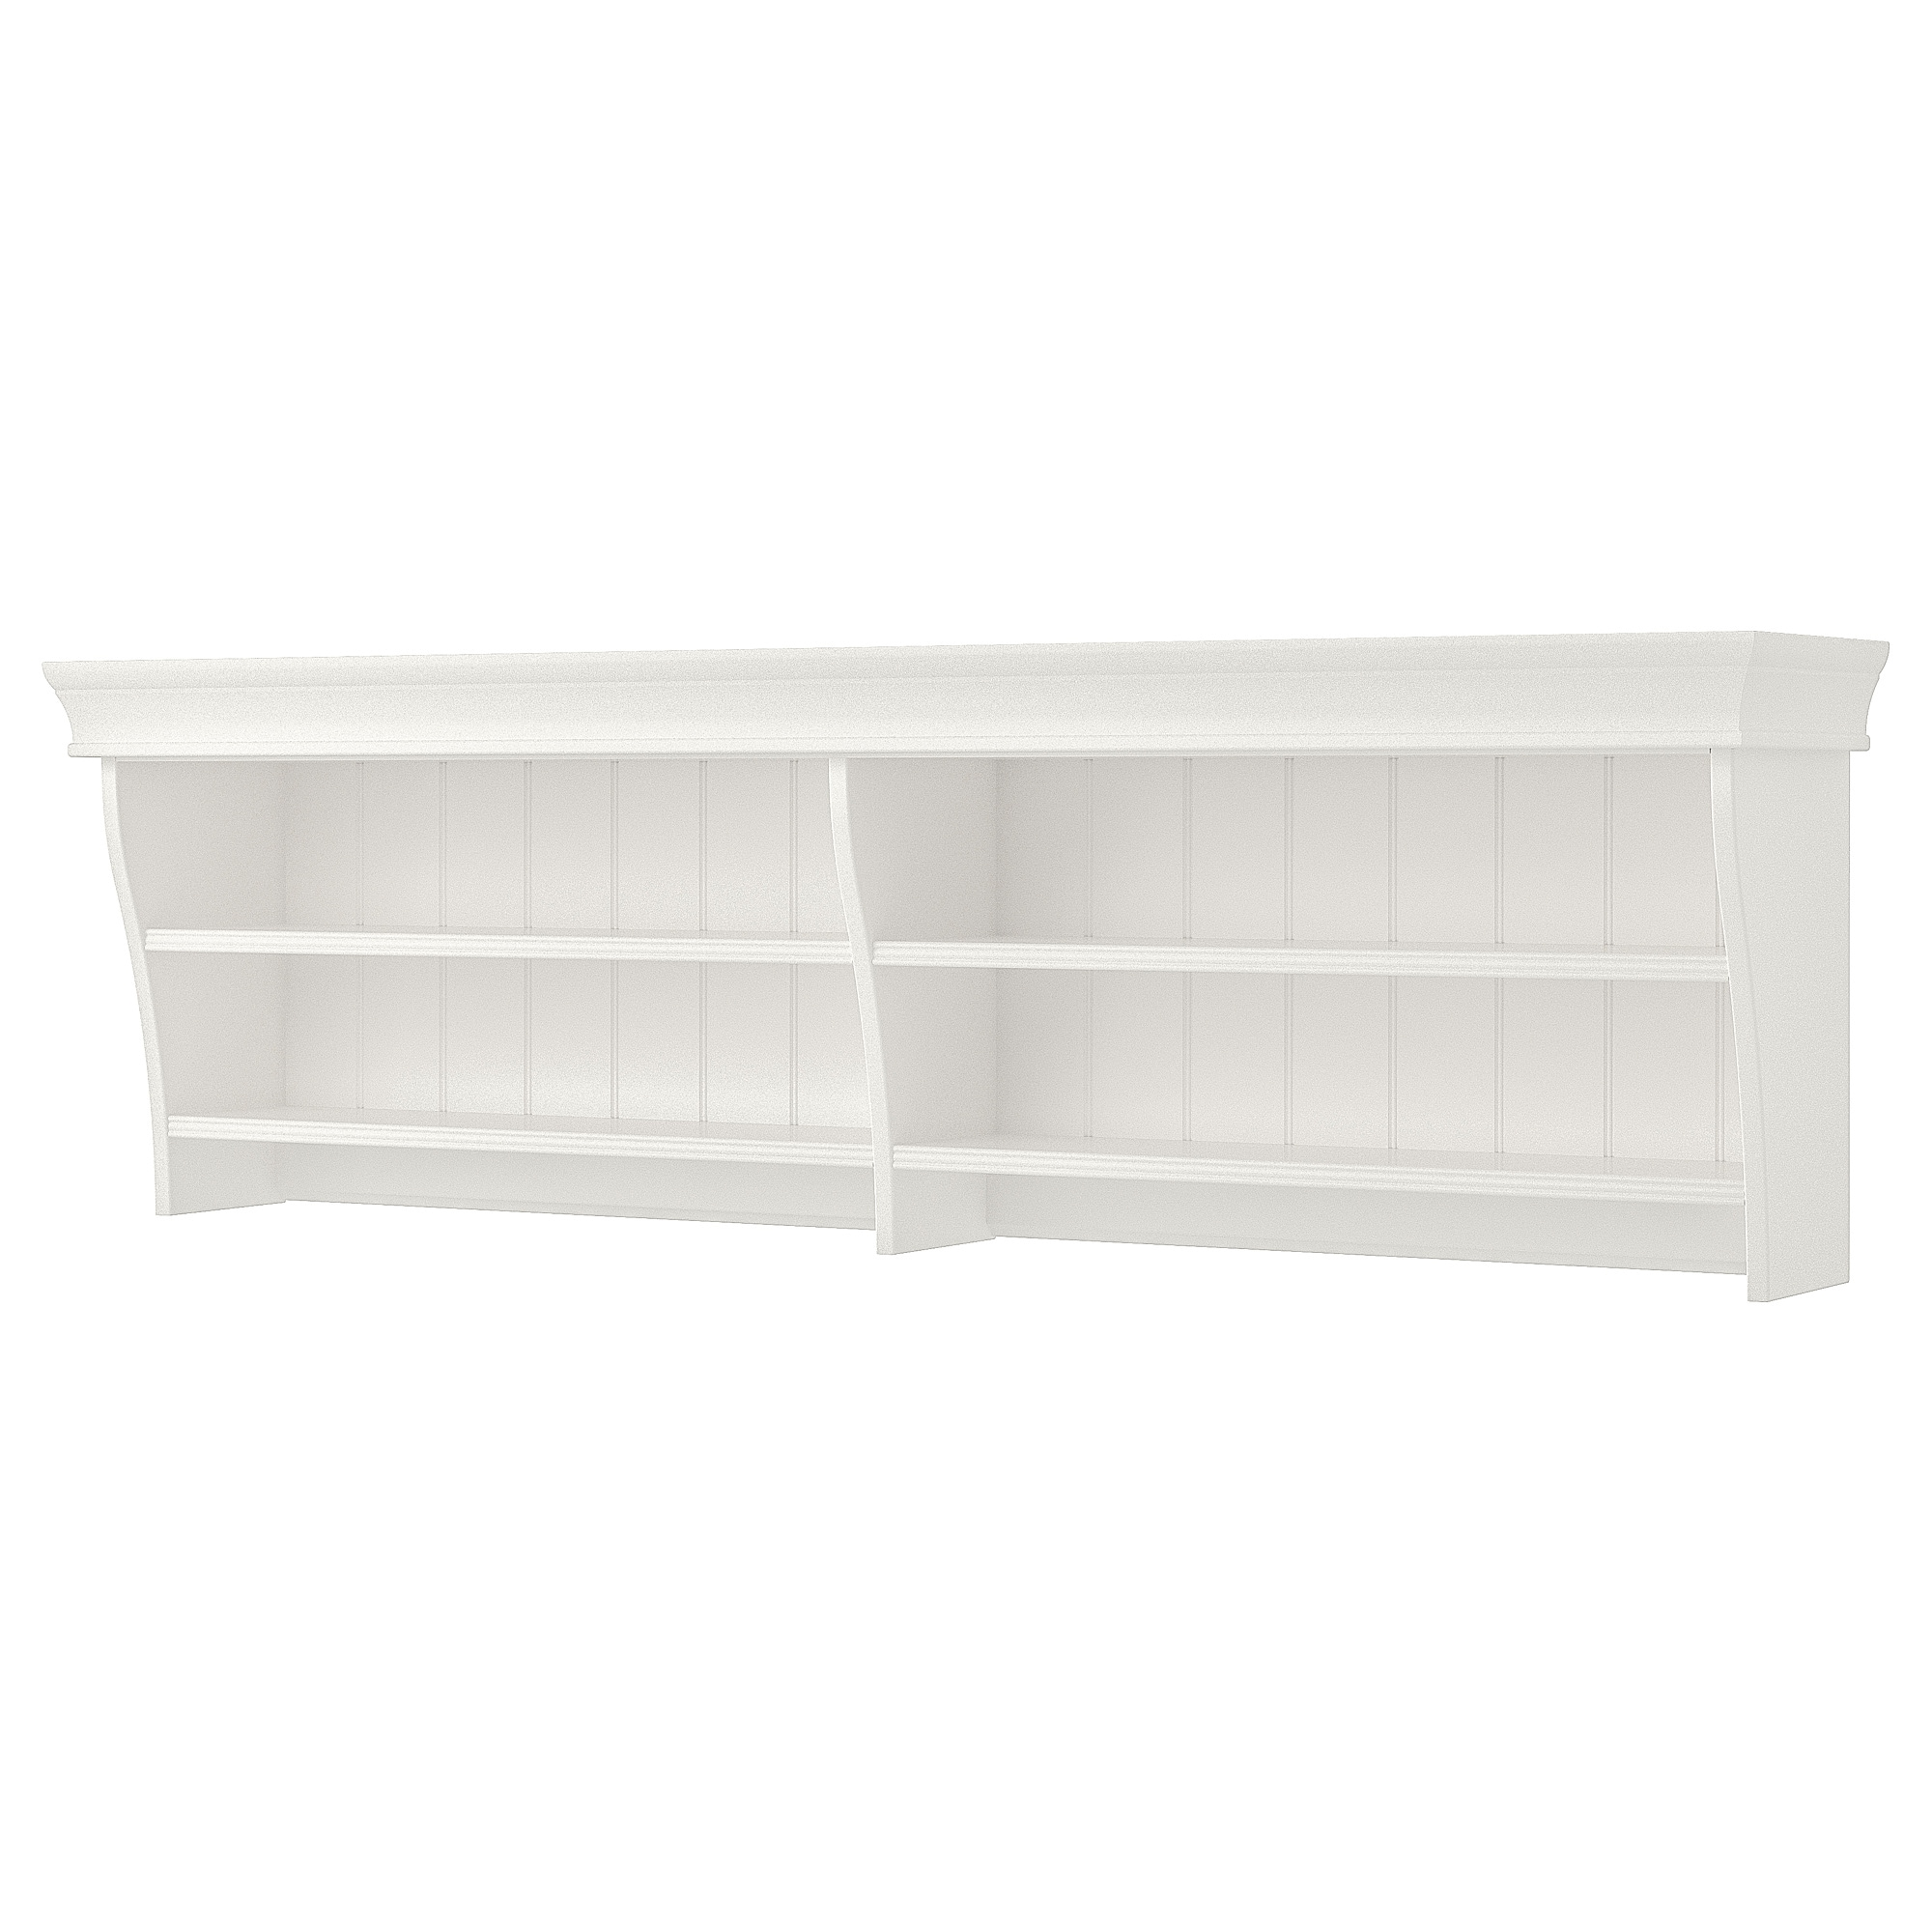 floating shelves wall shelf brackets ikea liatorp bridging white box mounted bathroom coat hooks wooden board kitchen slab closet design measurements home office cabinet systems